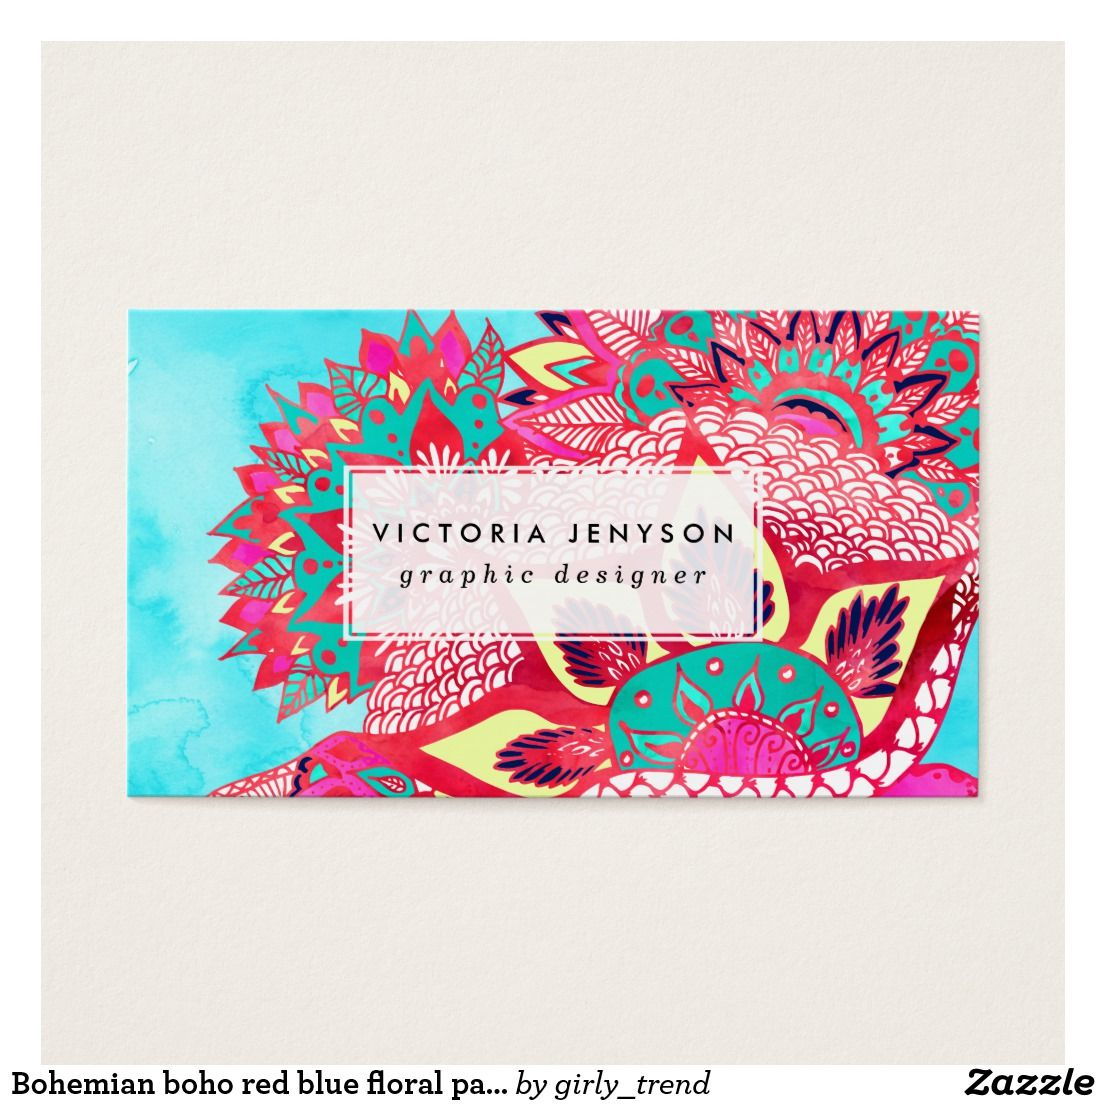 Bohemian boho red blue floral paisley pattern business card ...